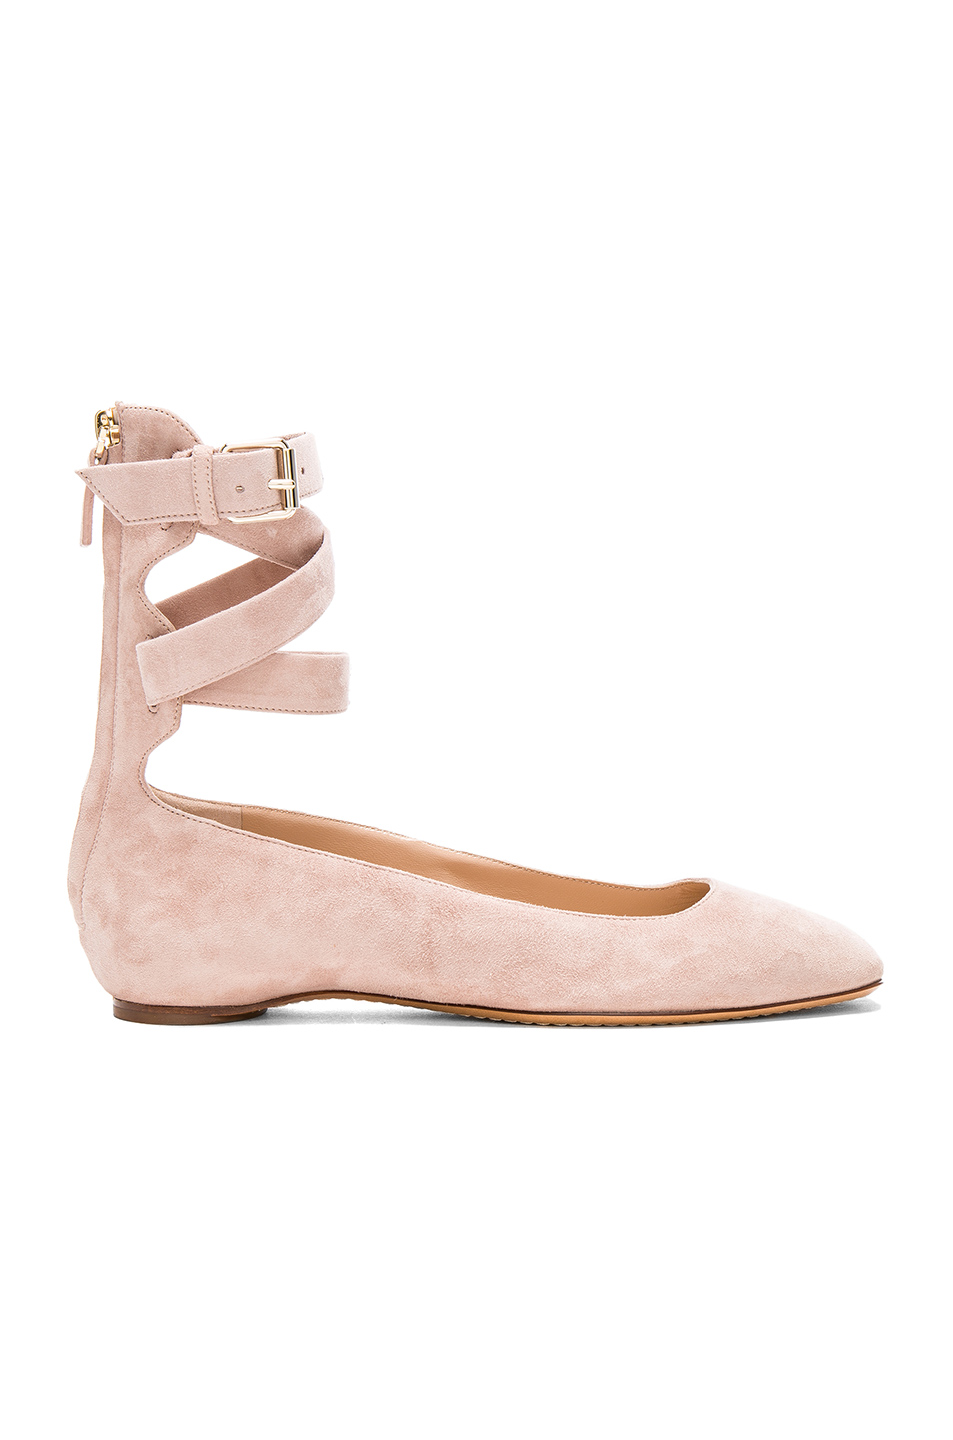 Valentino Suede Ankle Strap Flats in Neutrals